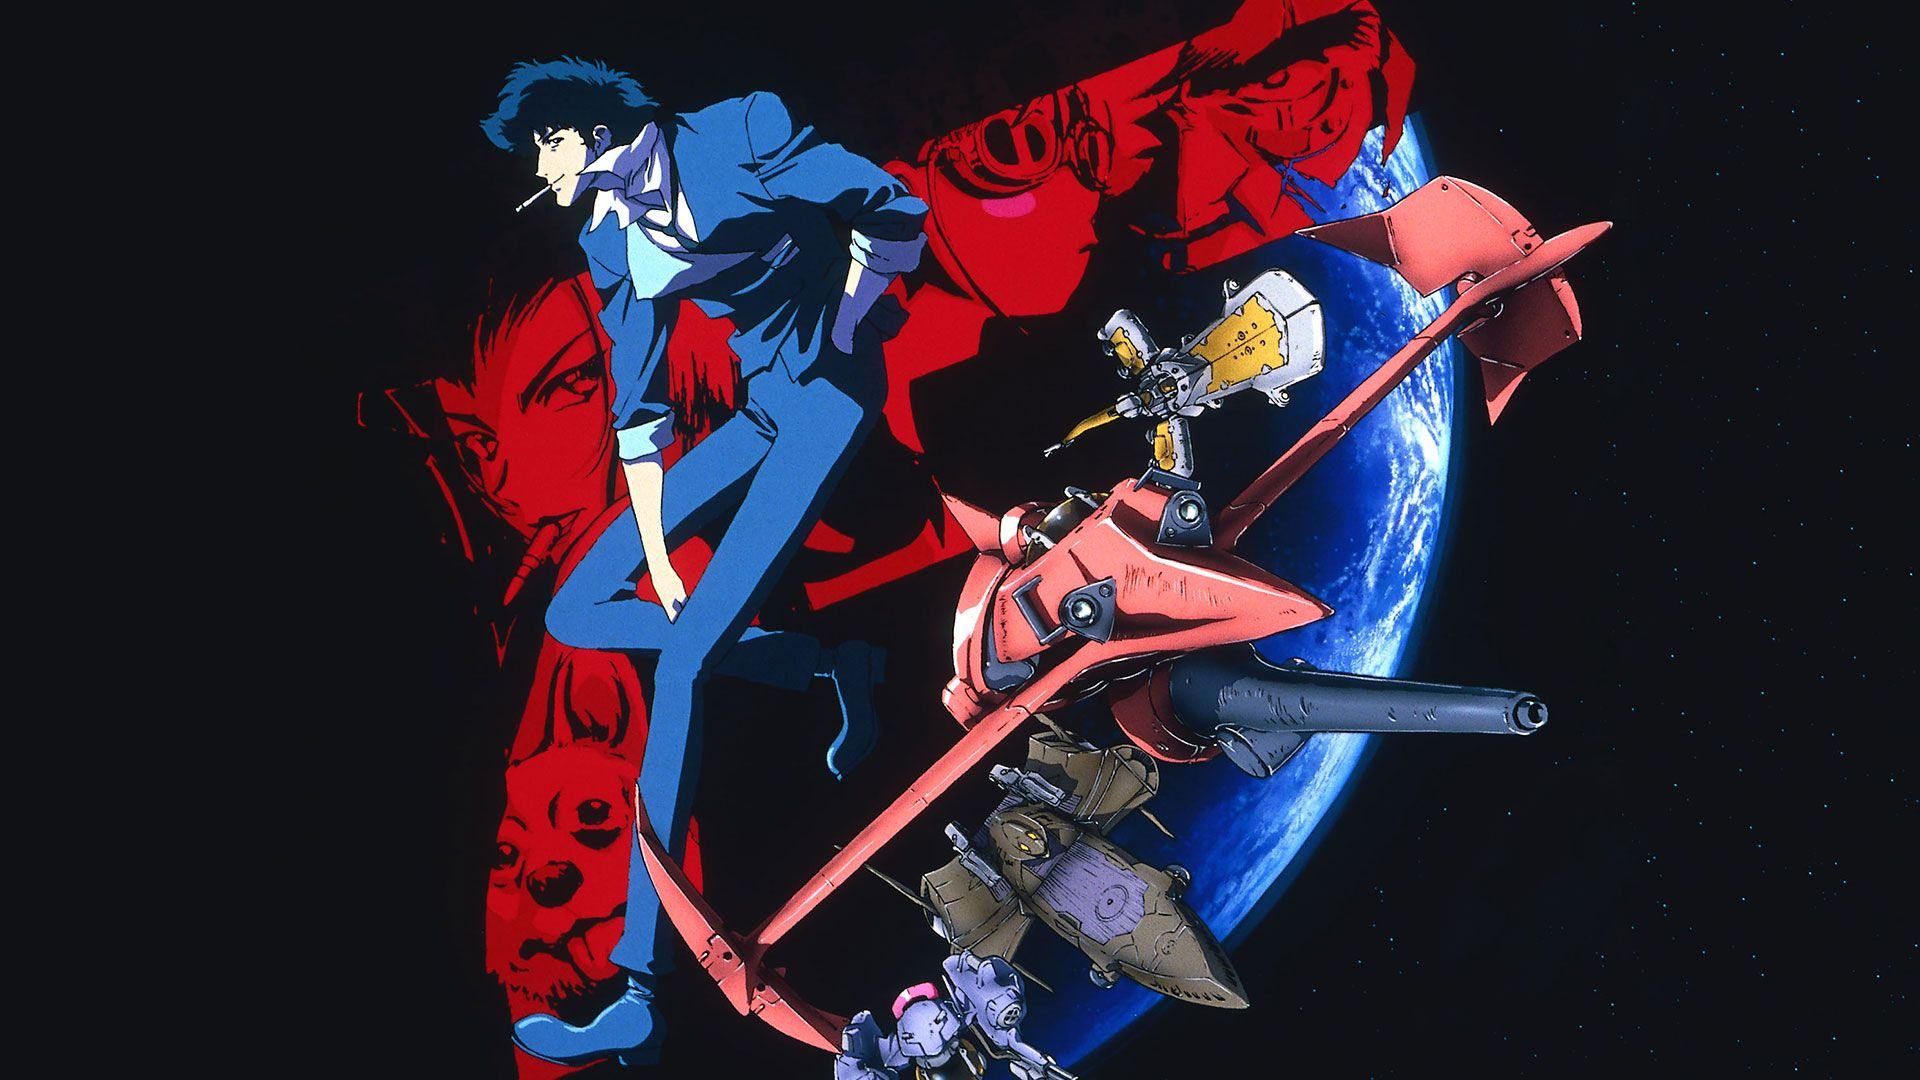 We've gathered more than 5 million images uploaded by our users and sorted them by the most popular ones. Desktop Cowboy Bebop Wallpaper Enwallpaper